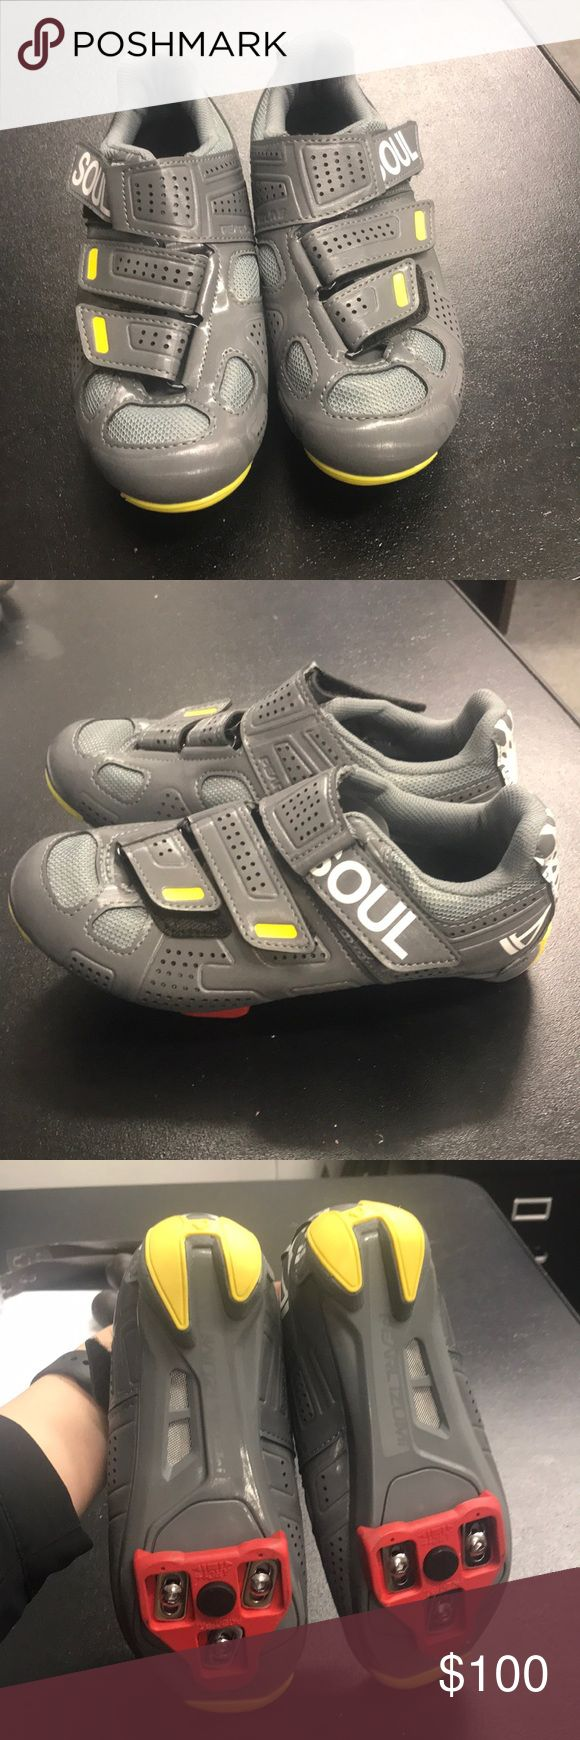 Soul cycle spin shoes Never have worn—bought a size 36 but they are a tad too small. Great spin shoes! soulcycle Shoes #cyclingshoes